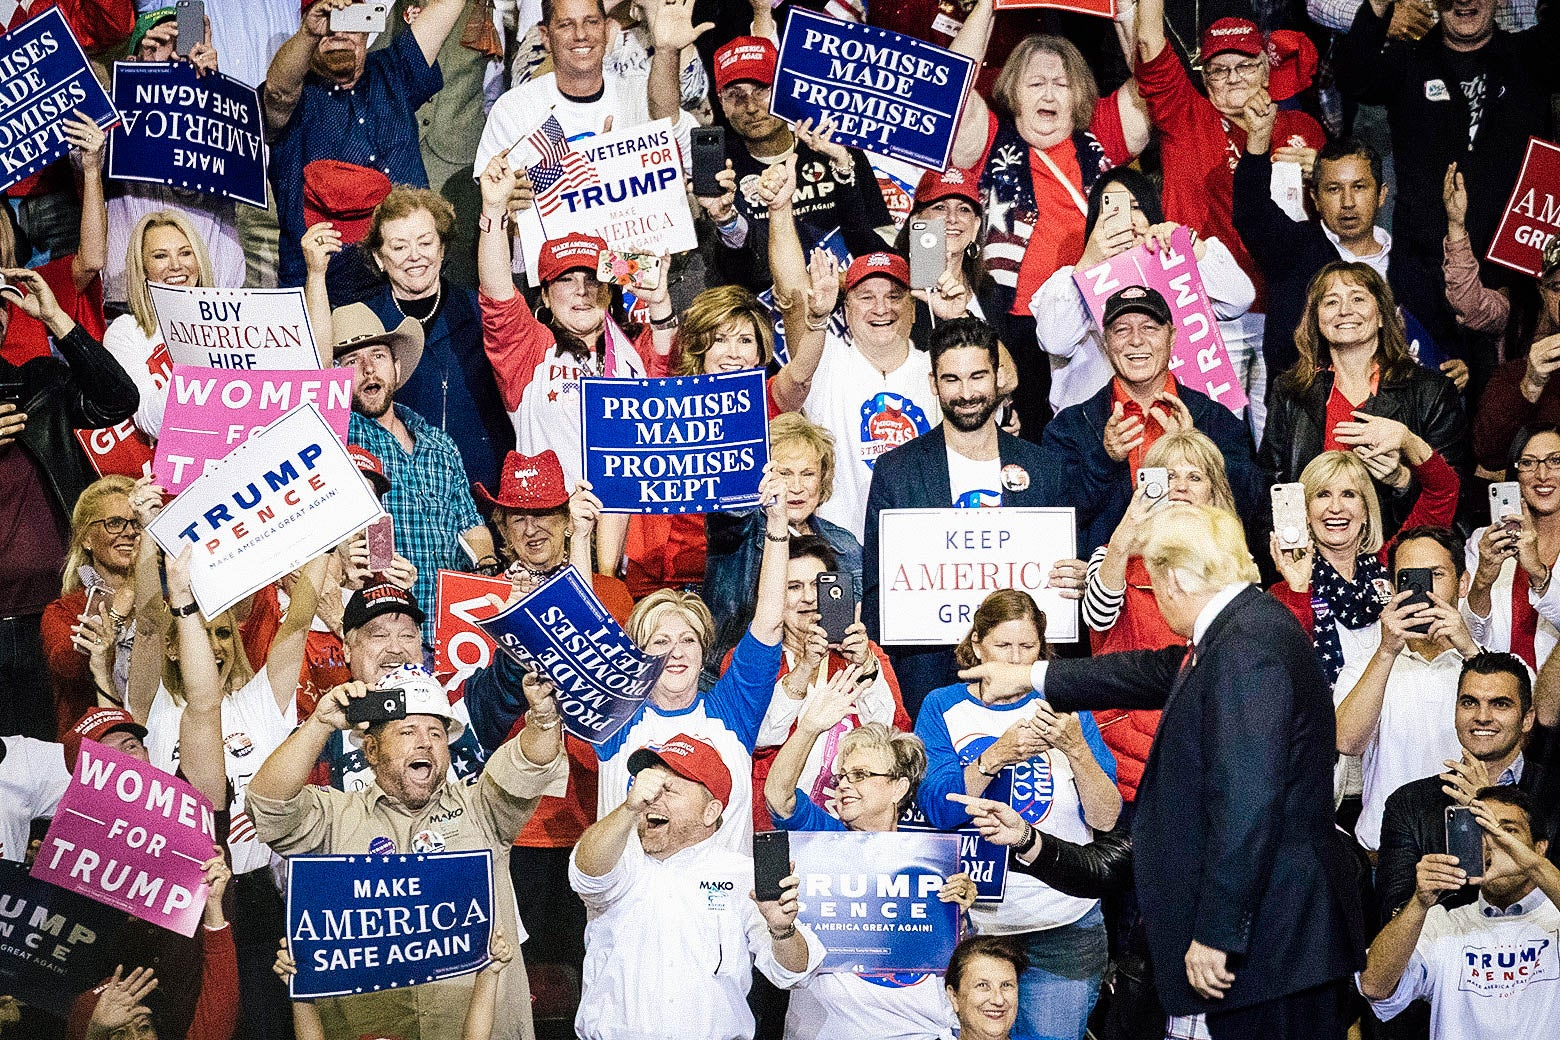 Supporters cheer as President Donald Trump takes the stage for a rally in support of Sen. Ted Cruz.